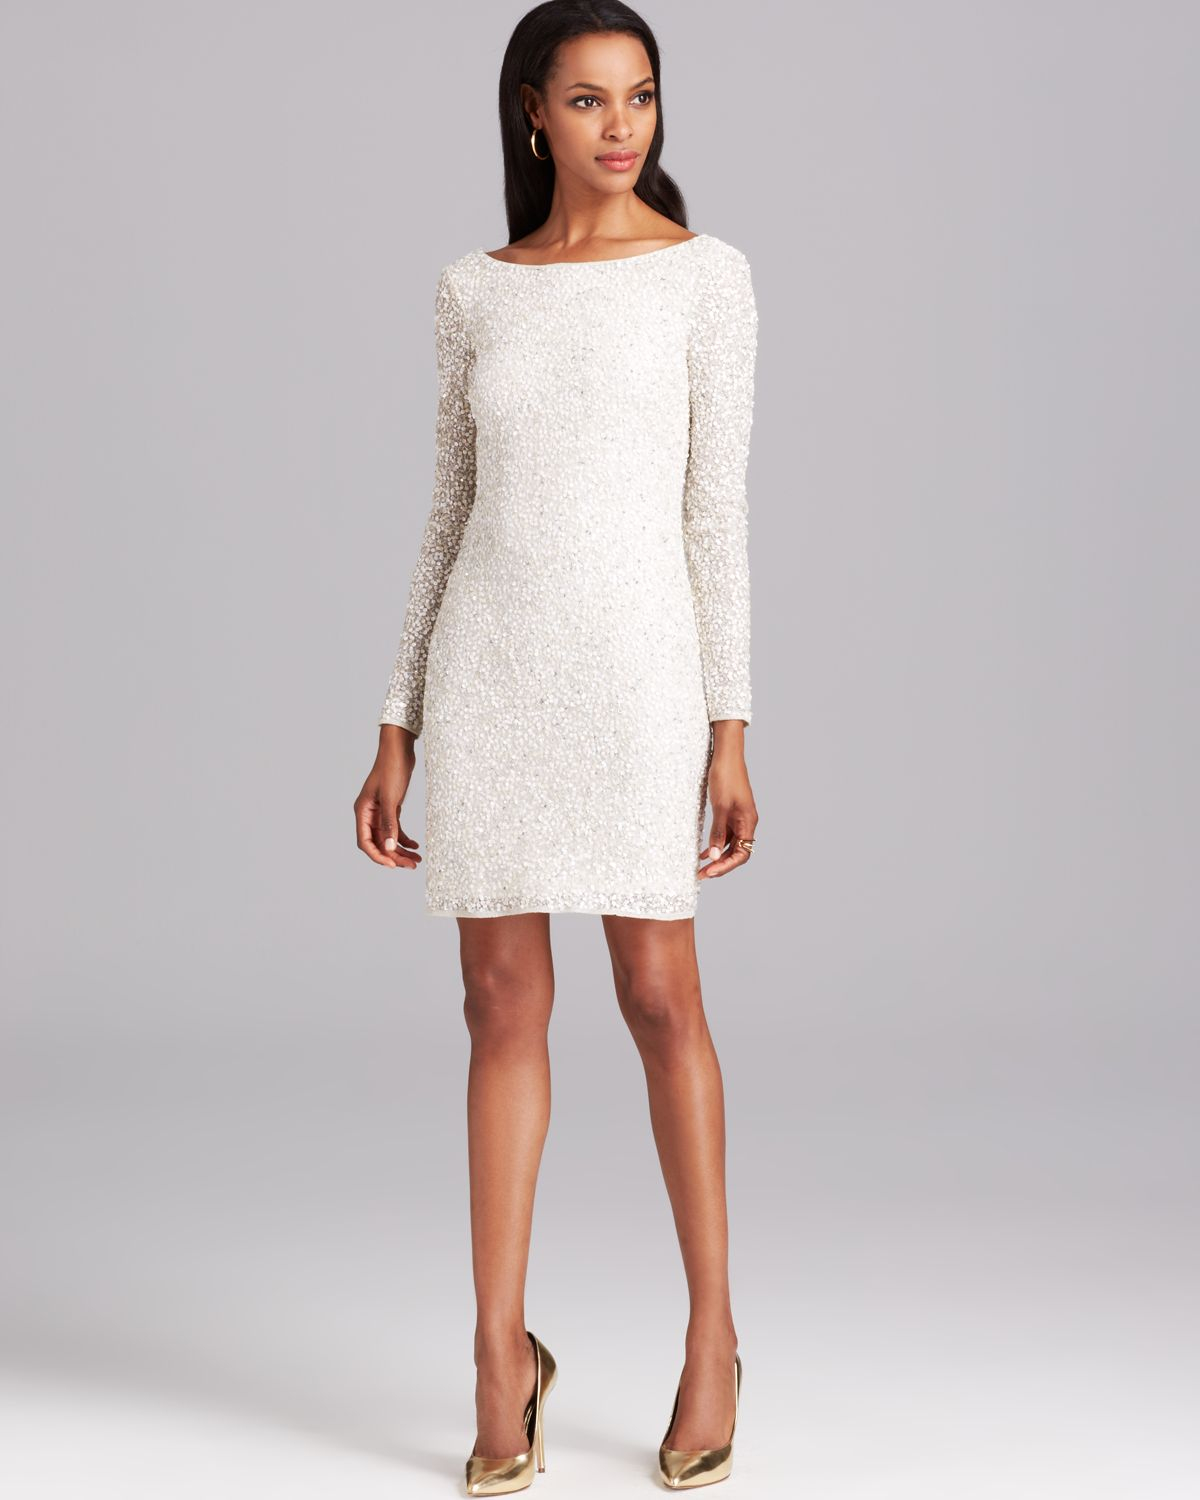 LONG SLEEVED COCKTAIL DRESSES